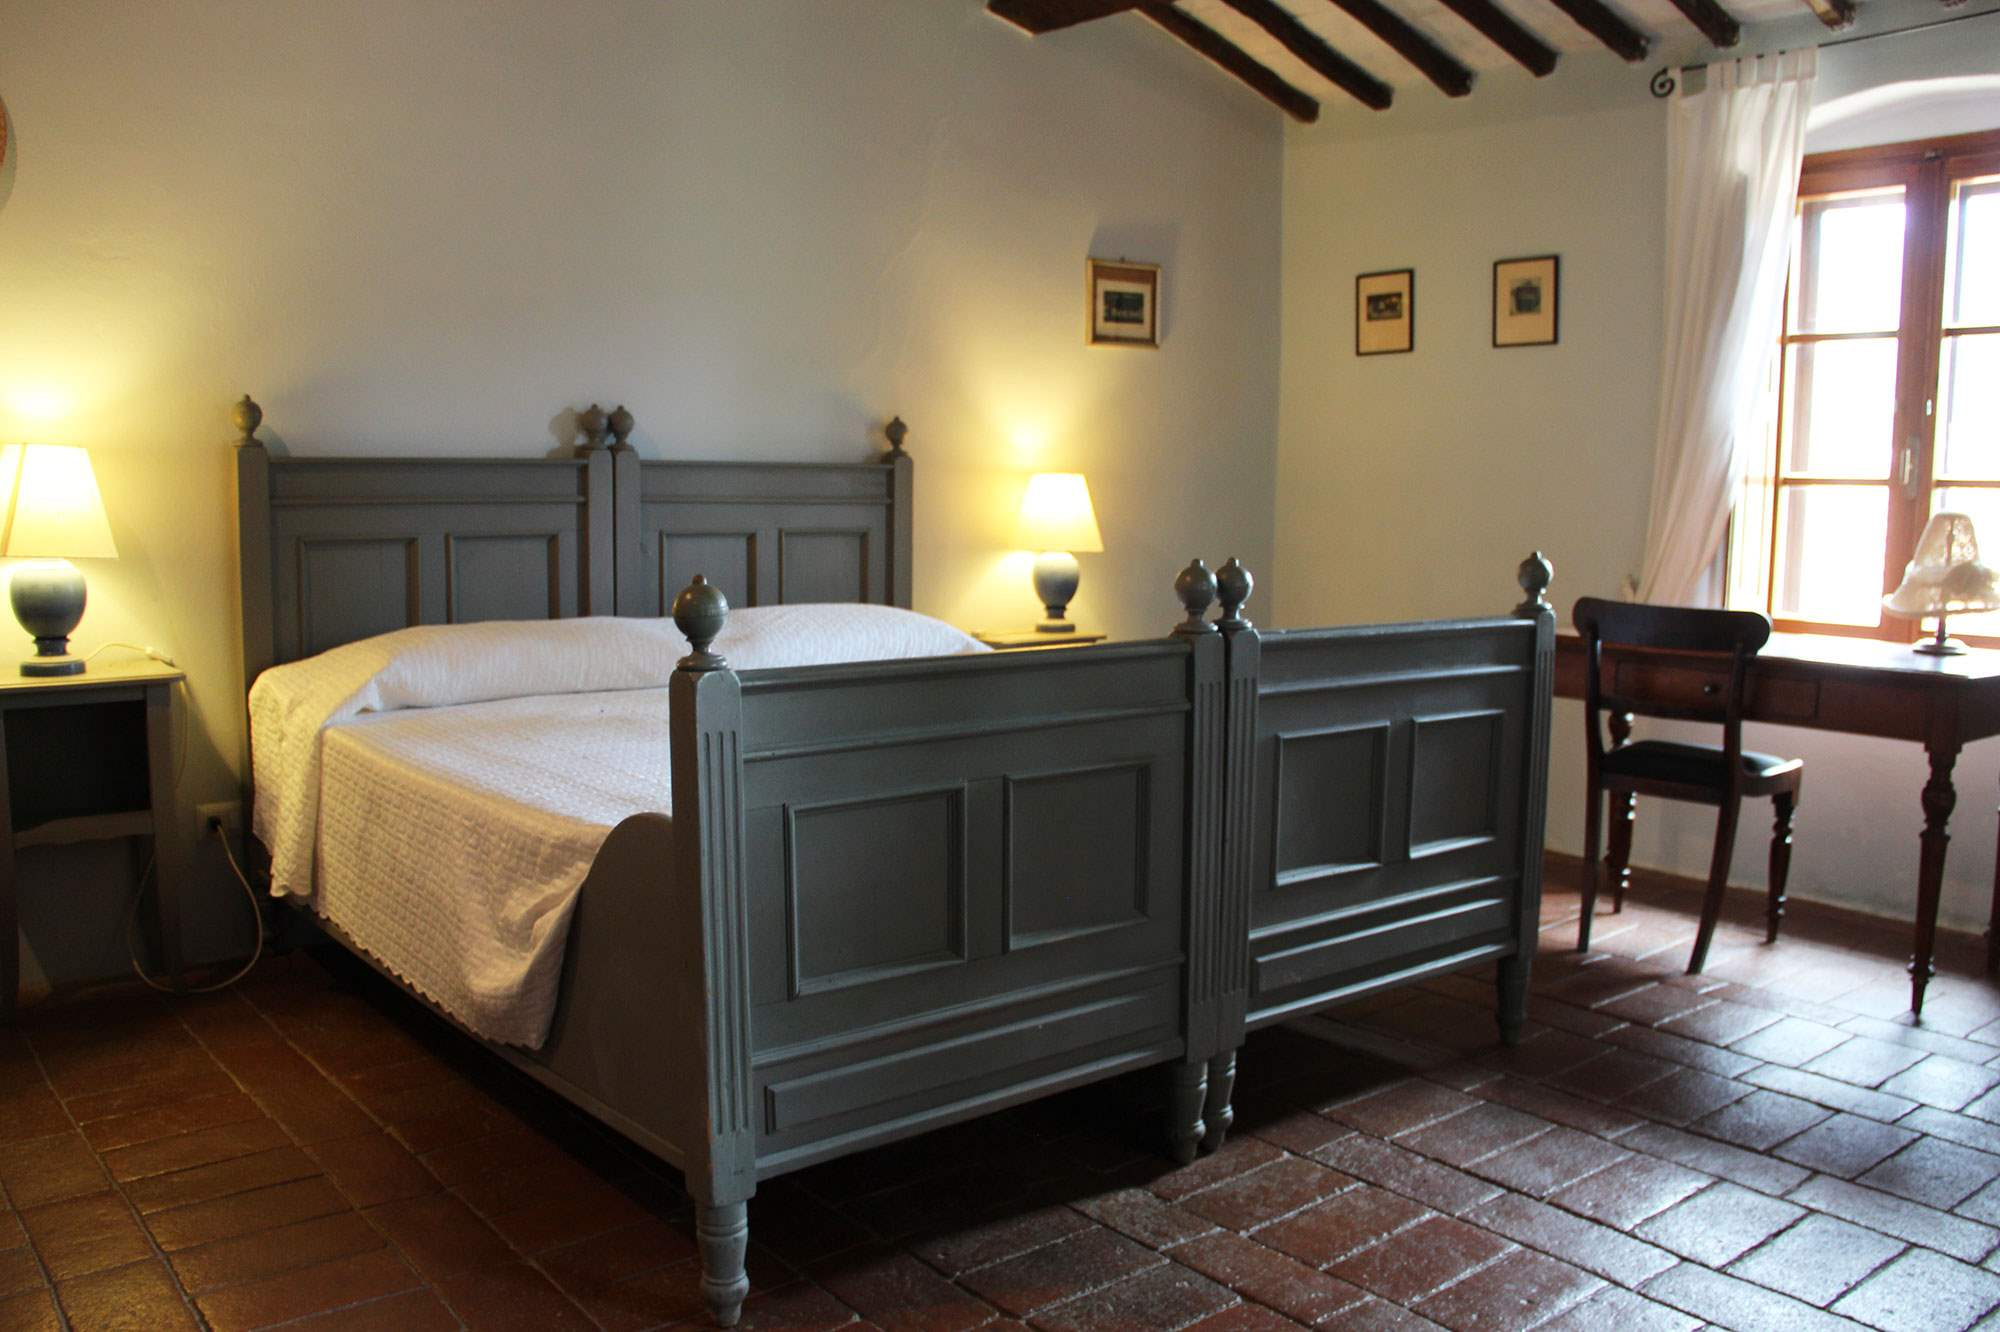 Villa Giacinto, 6 Bedroom rate, 6 bedroom villa in Chianti & Countryside, Tuscany Photo #24